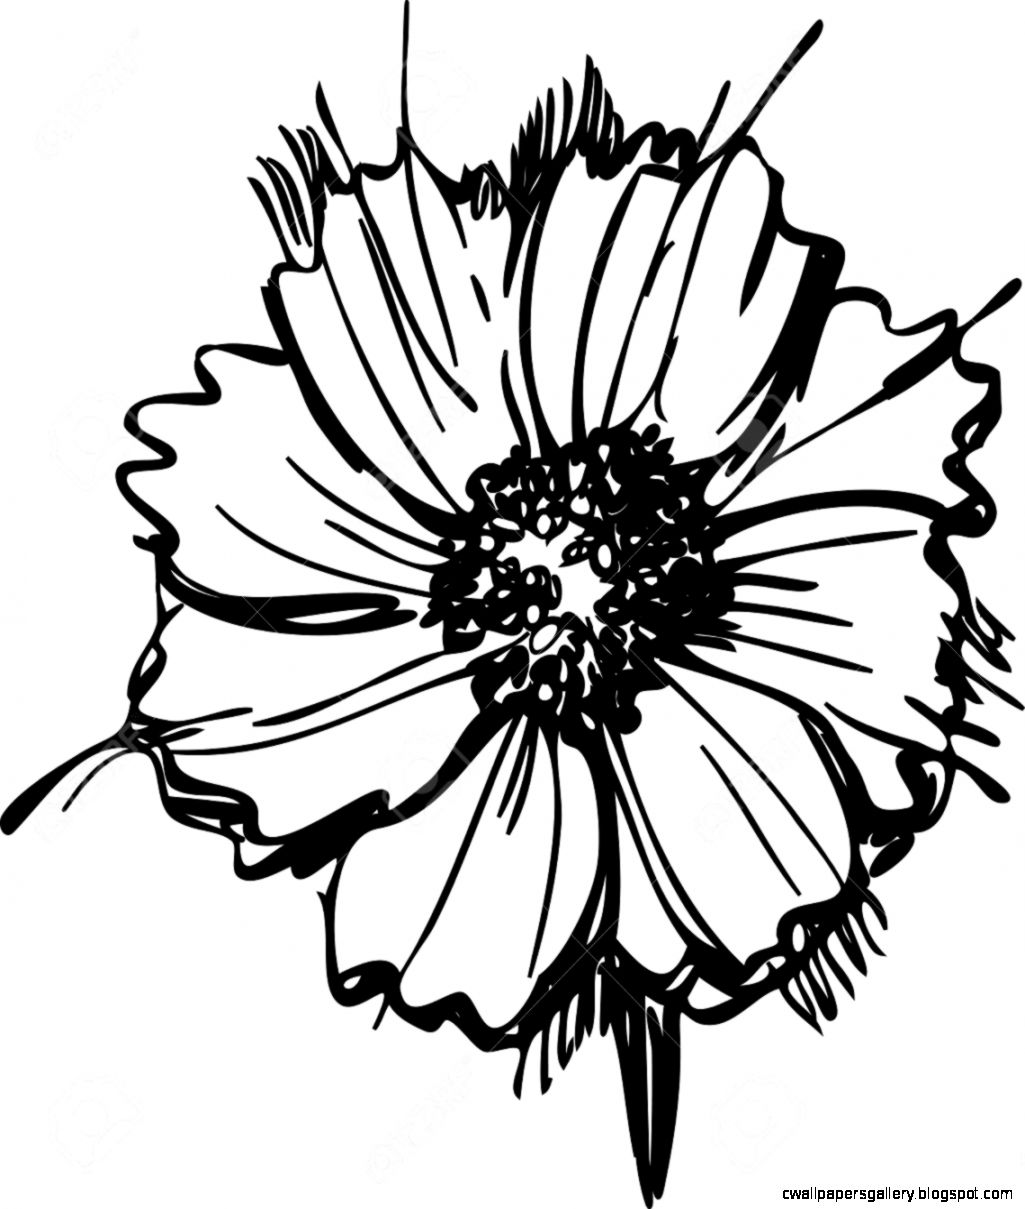 daisy flower cartoon pictures daisy line drawing at getdrawings free download daisy flower cartoon pictures